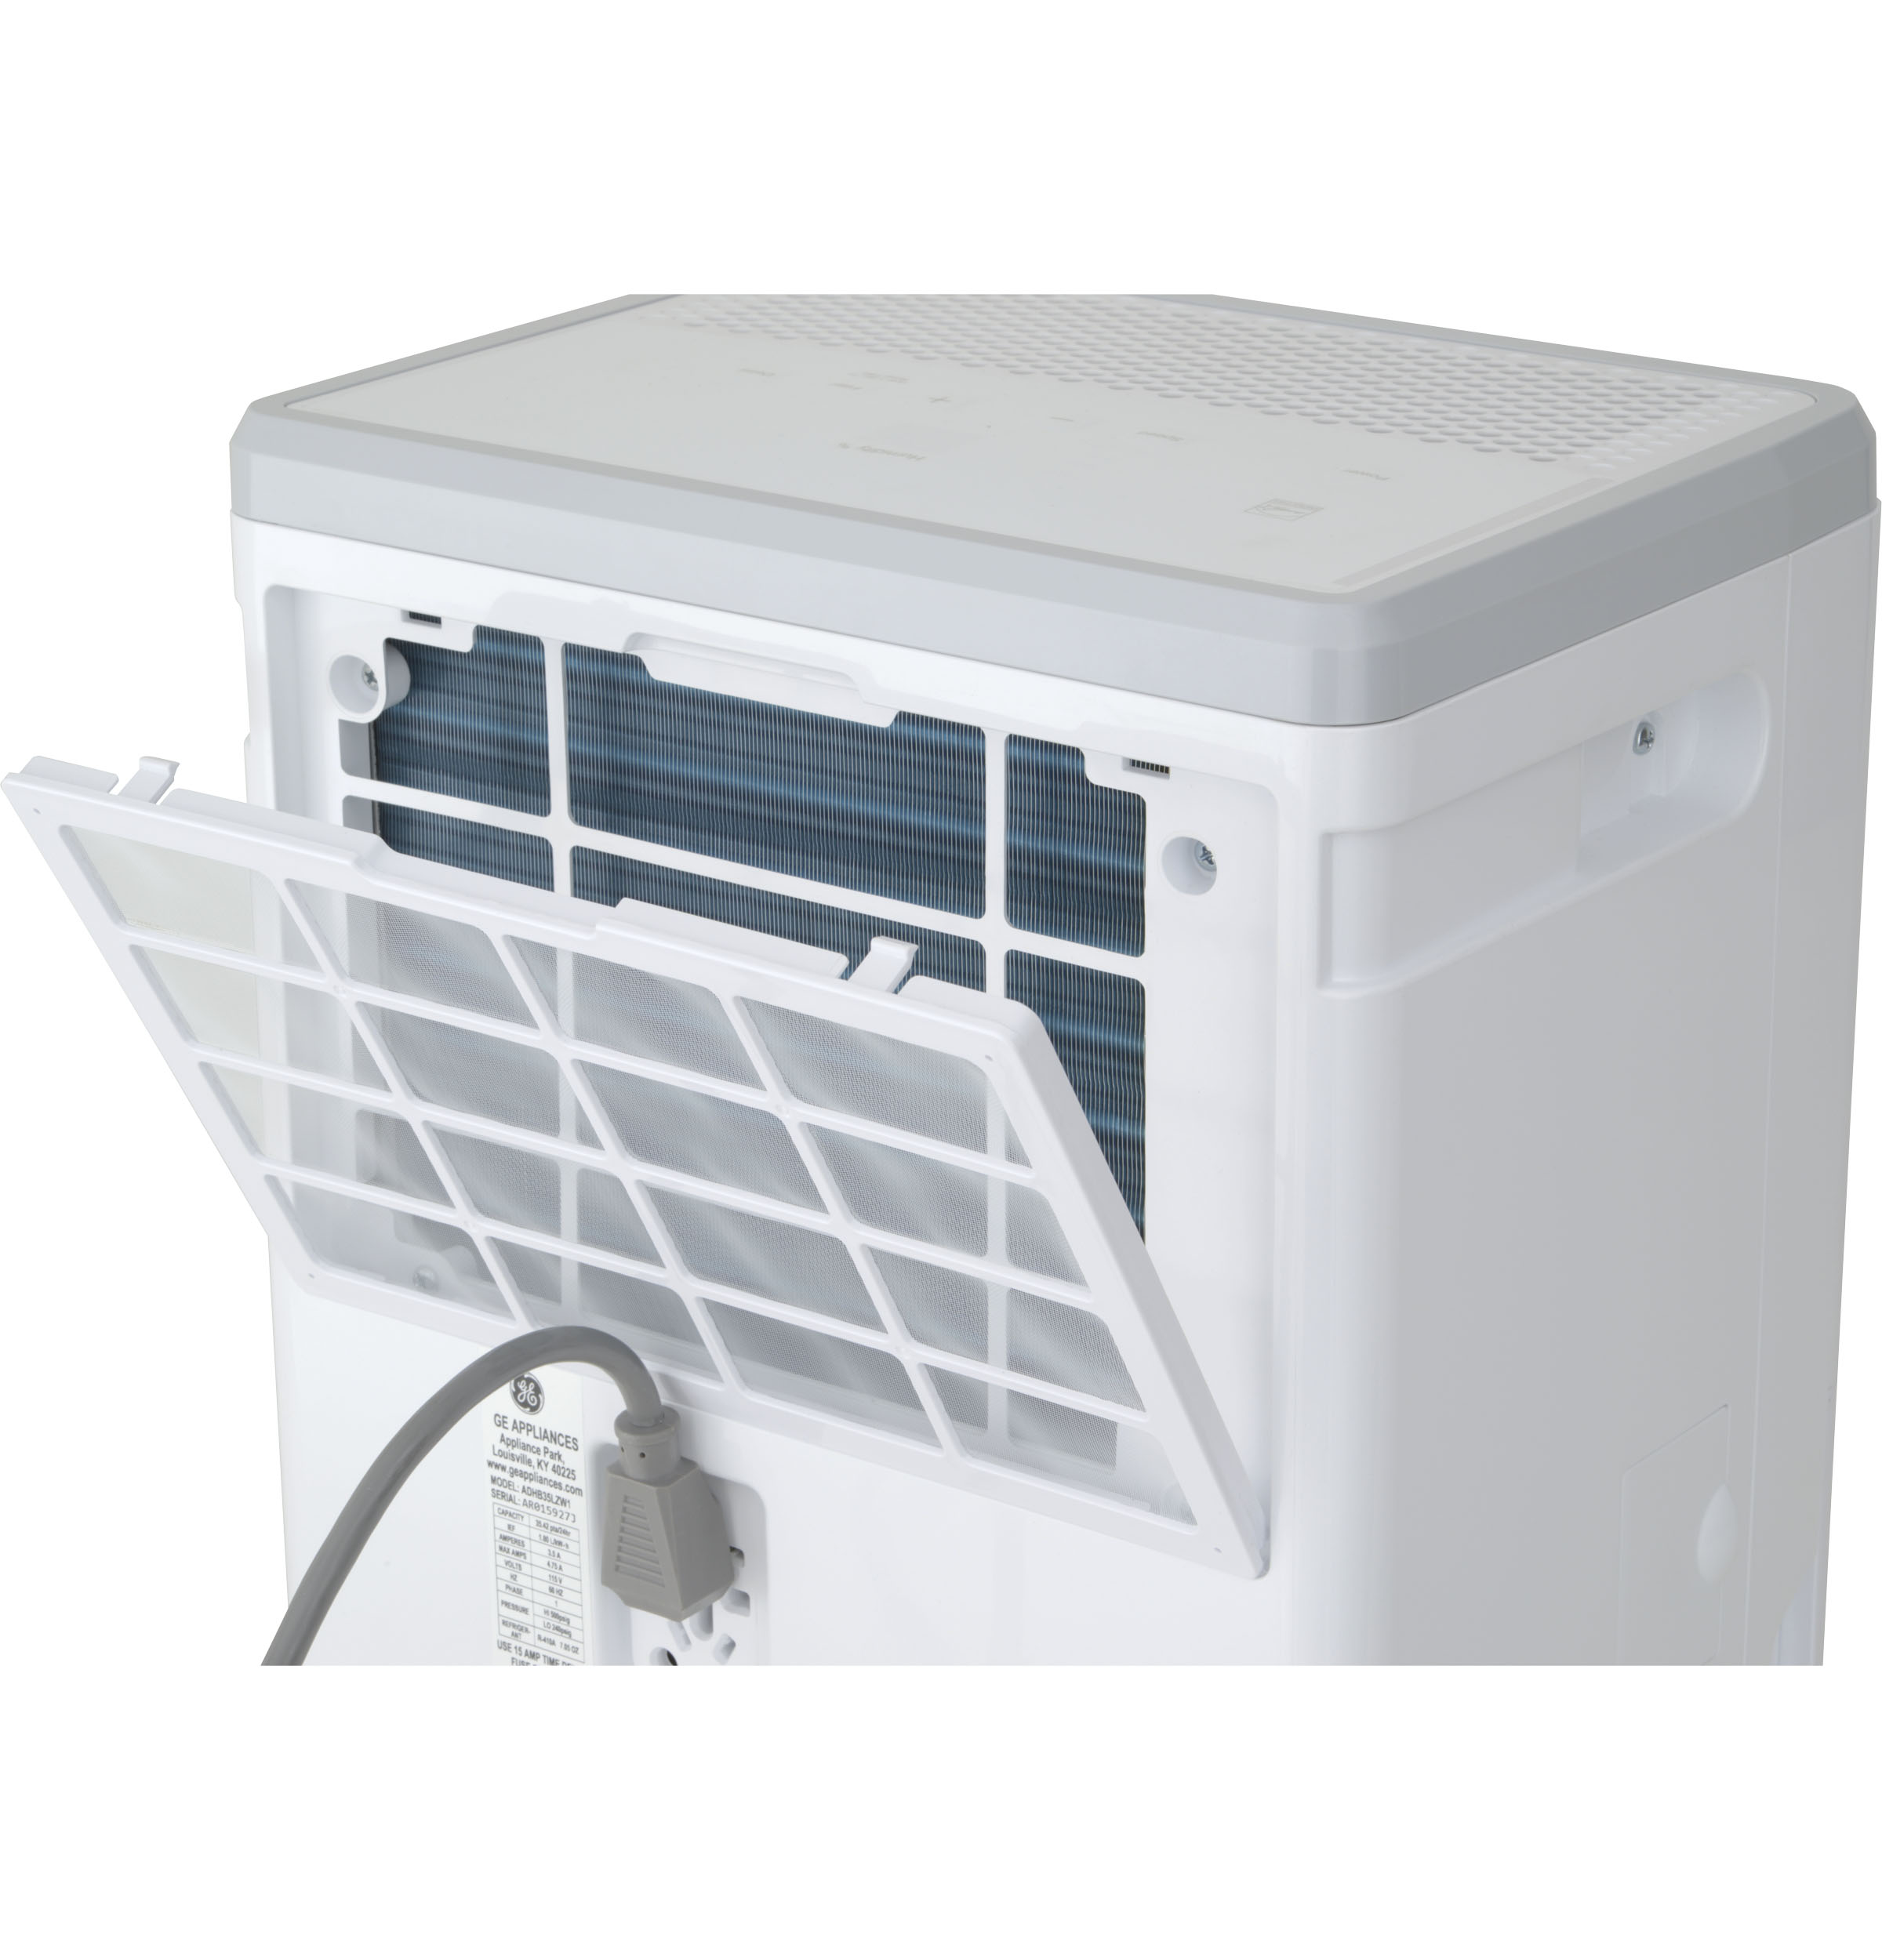 Model: QPHR50LZ | Haier Haier® ENERGY STAR® 50 Pint Dehumidifier for Home or Basement with Built-in Pump, Large, White